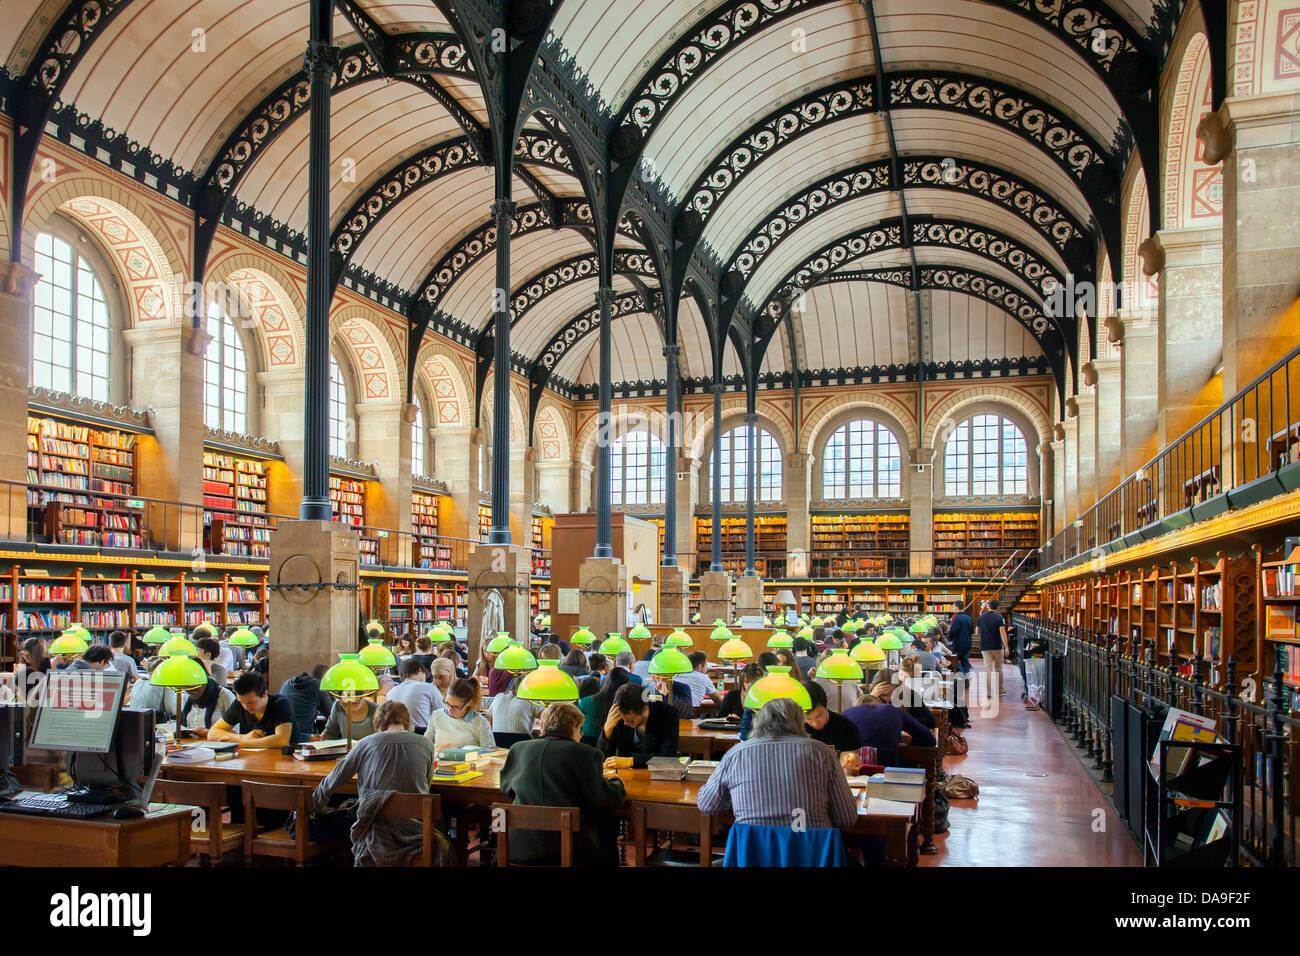 Full seats at the Bibliotheque Sainte Genevieve - public library in the Latin Quarter, Paris France - Stock Image